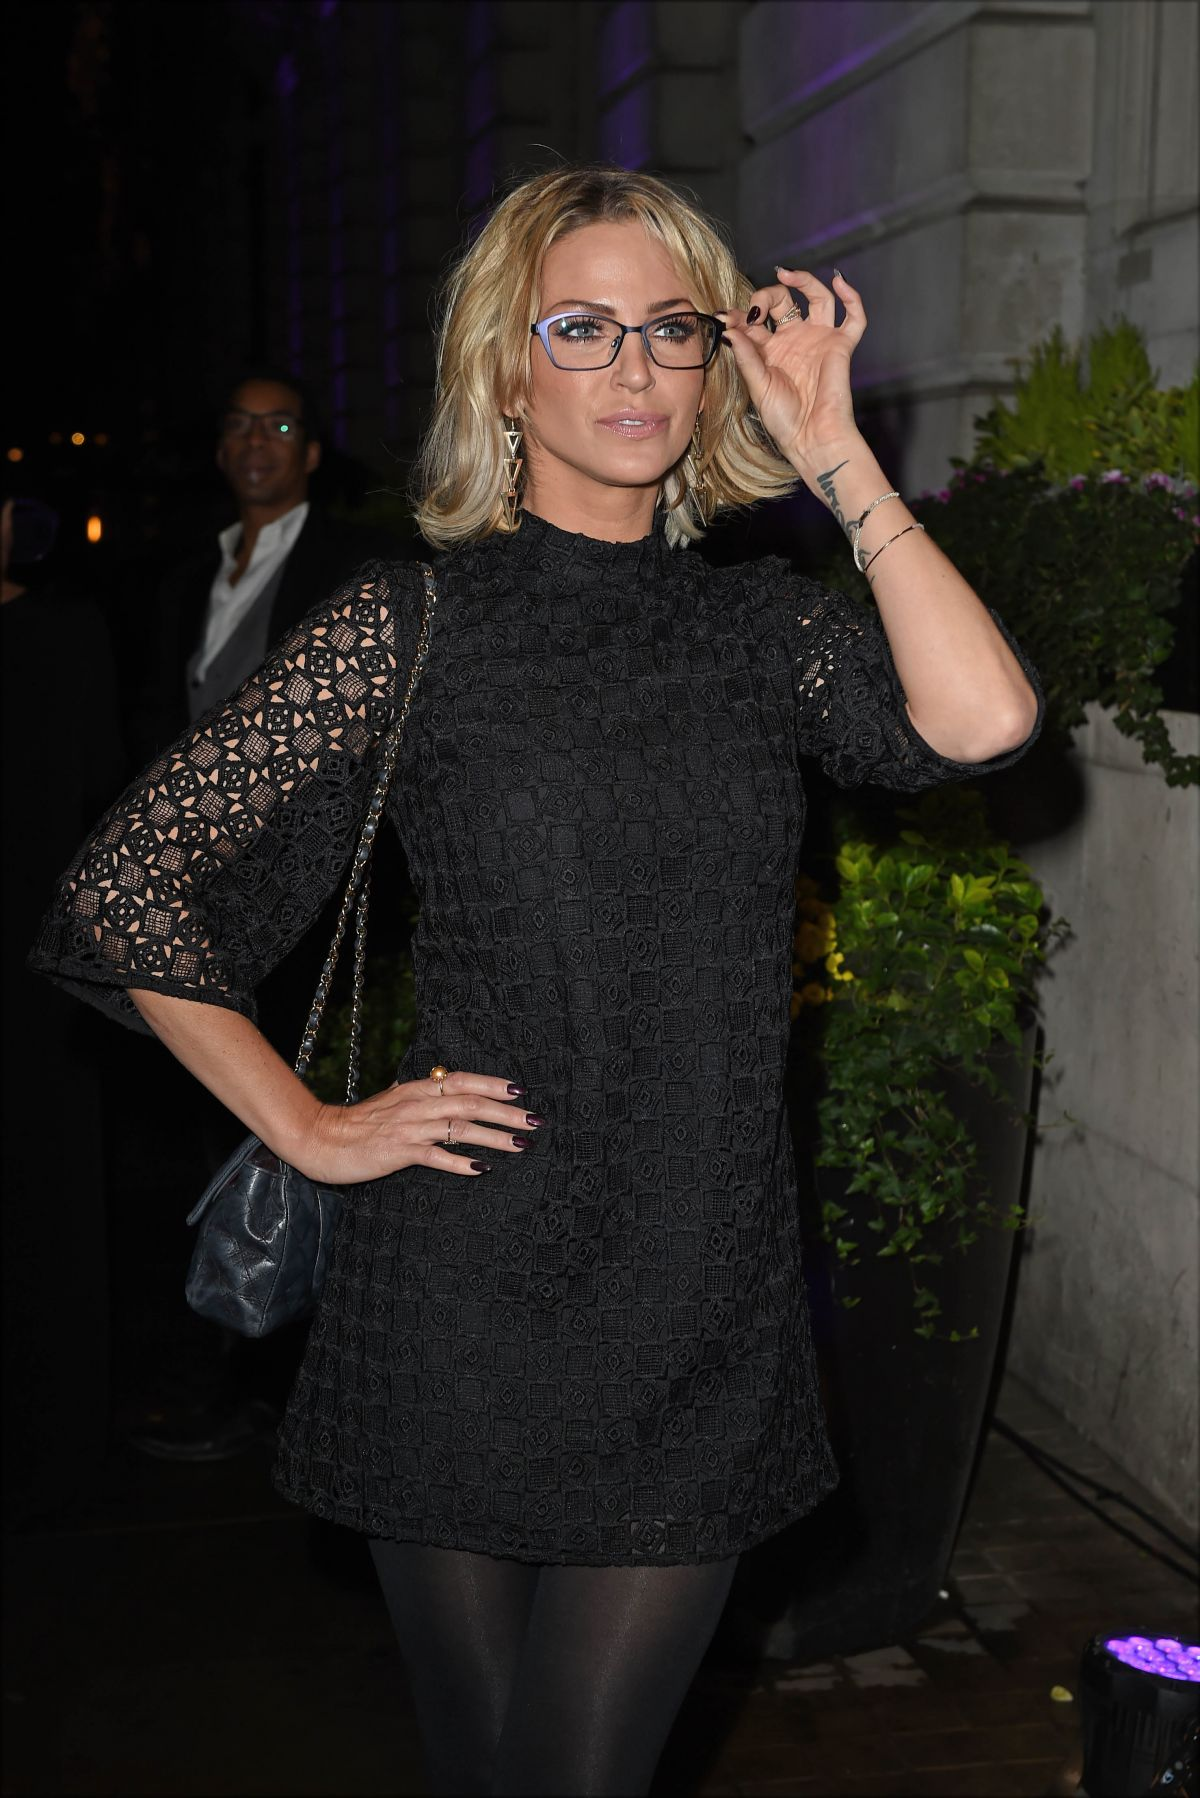 Sarah harding at specsavers s spectacle wearer of the year in london